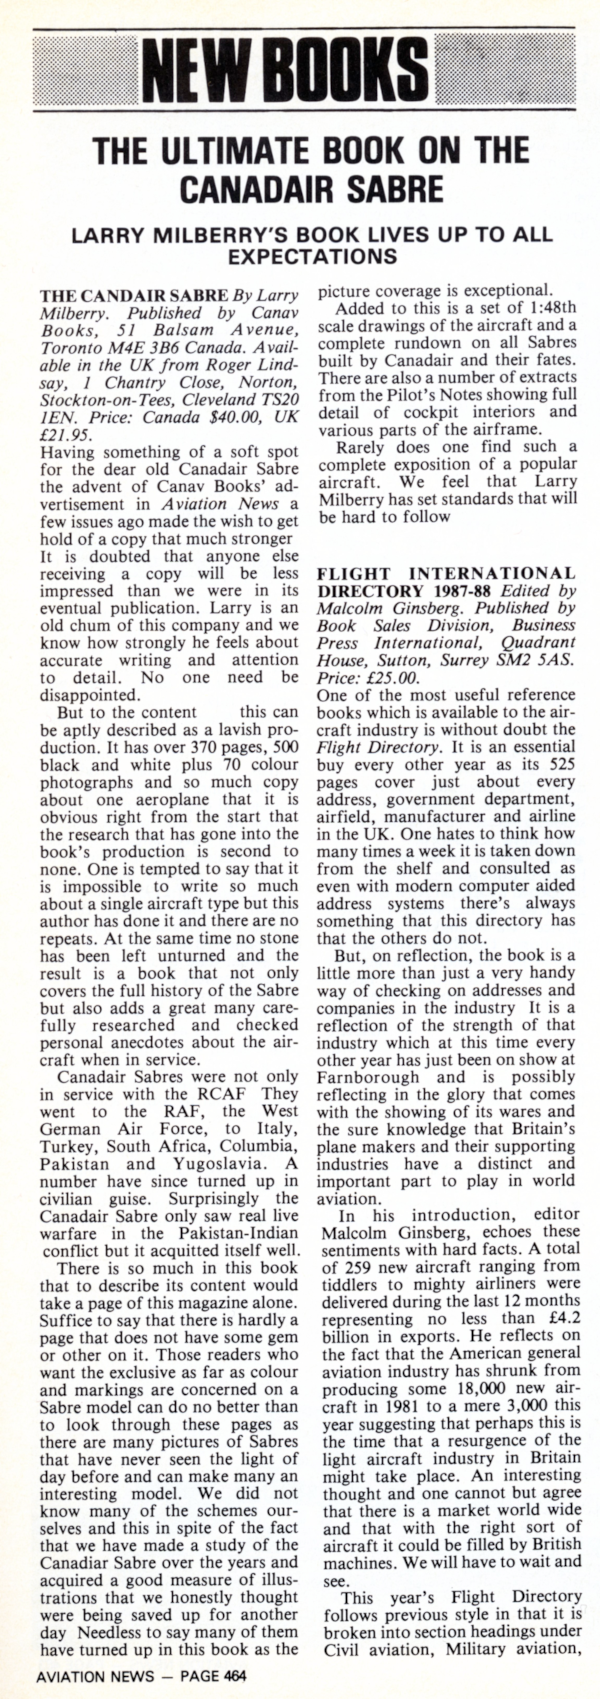 Review of The Canadair Sabre in Aviation News Magazine, 1986